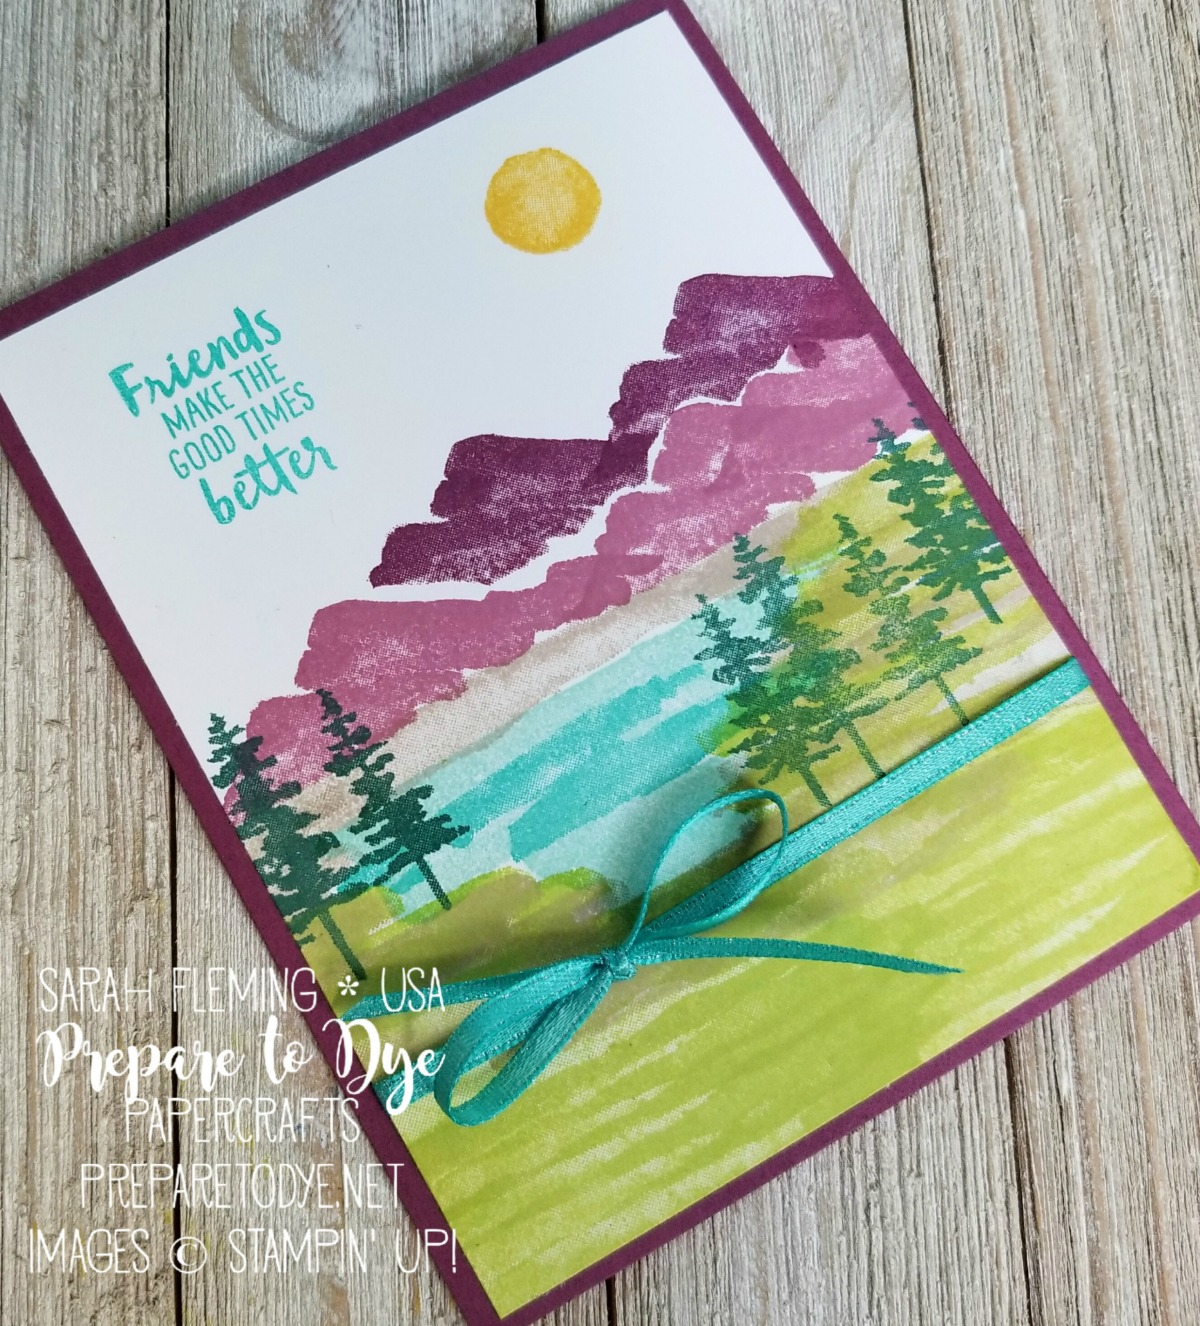 Stampin' Up! Waterfront stamp set - handmade thank you card - Occasions 2018, FREE Sale-A-Bration ribbon - Sarah Fleming - Prepare to Dye Papercrafts